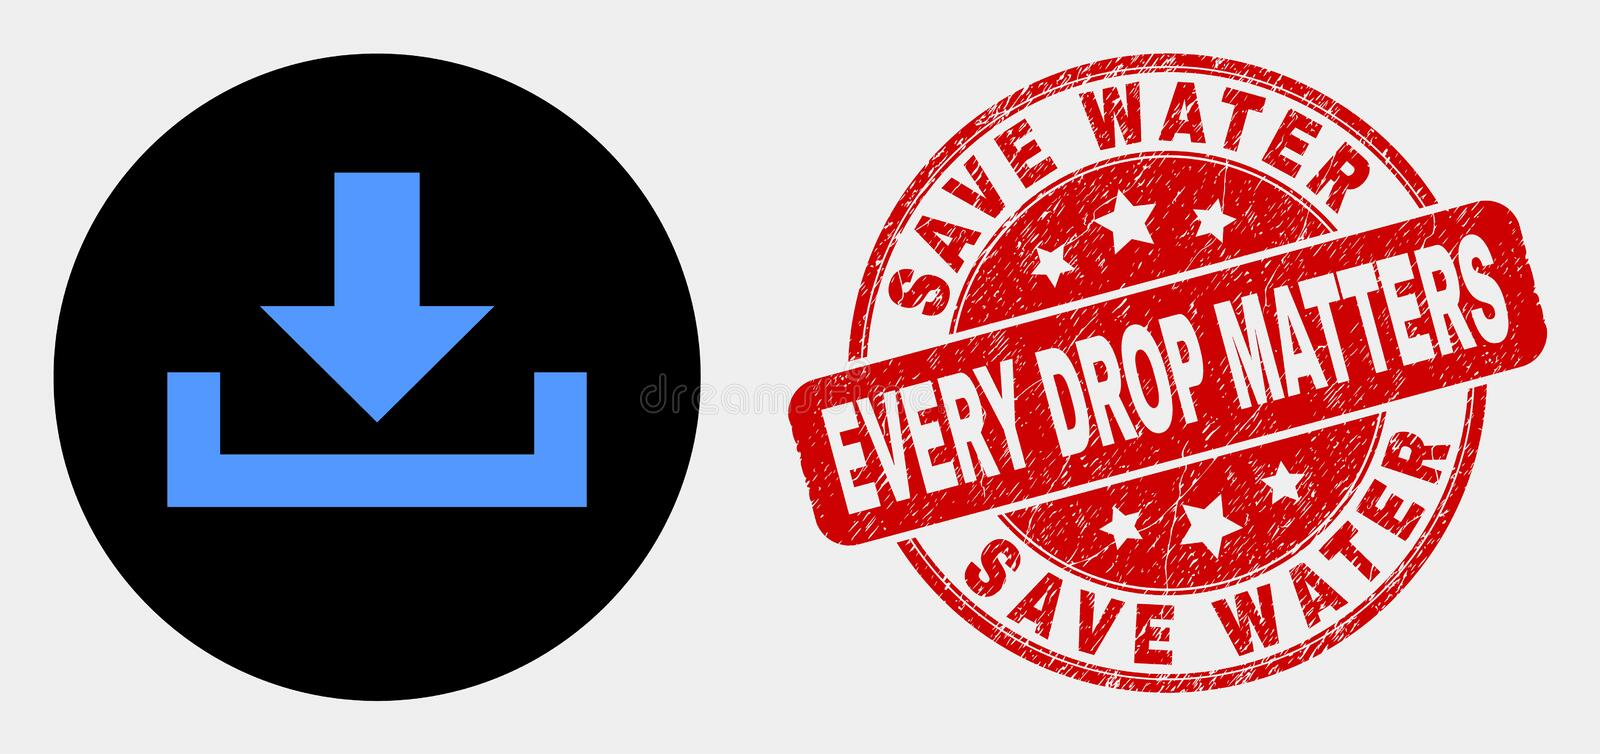 Vector Download Icon and Grunge Save Water Every Drop Matters Seal royalty free illustration